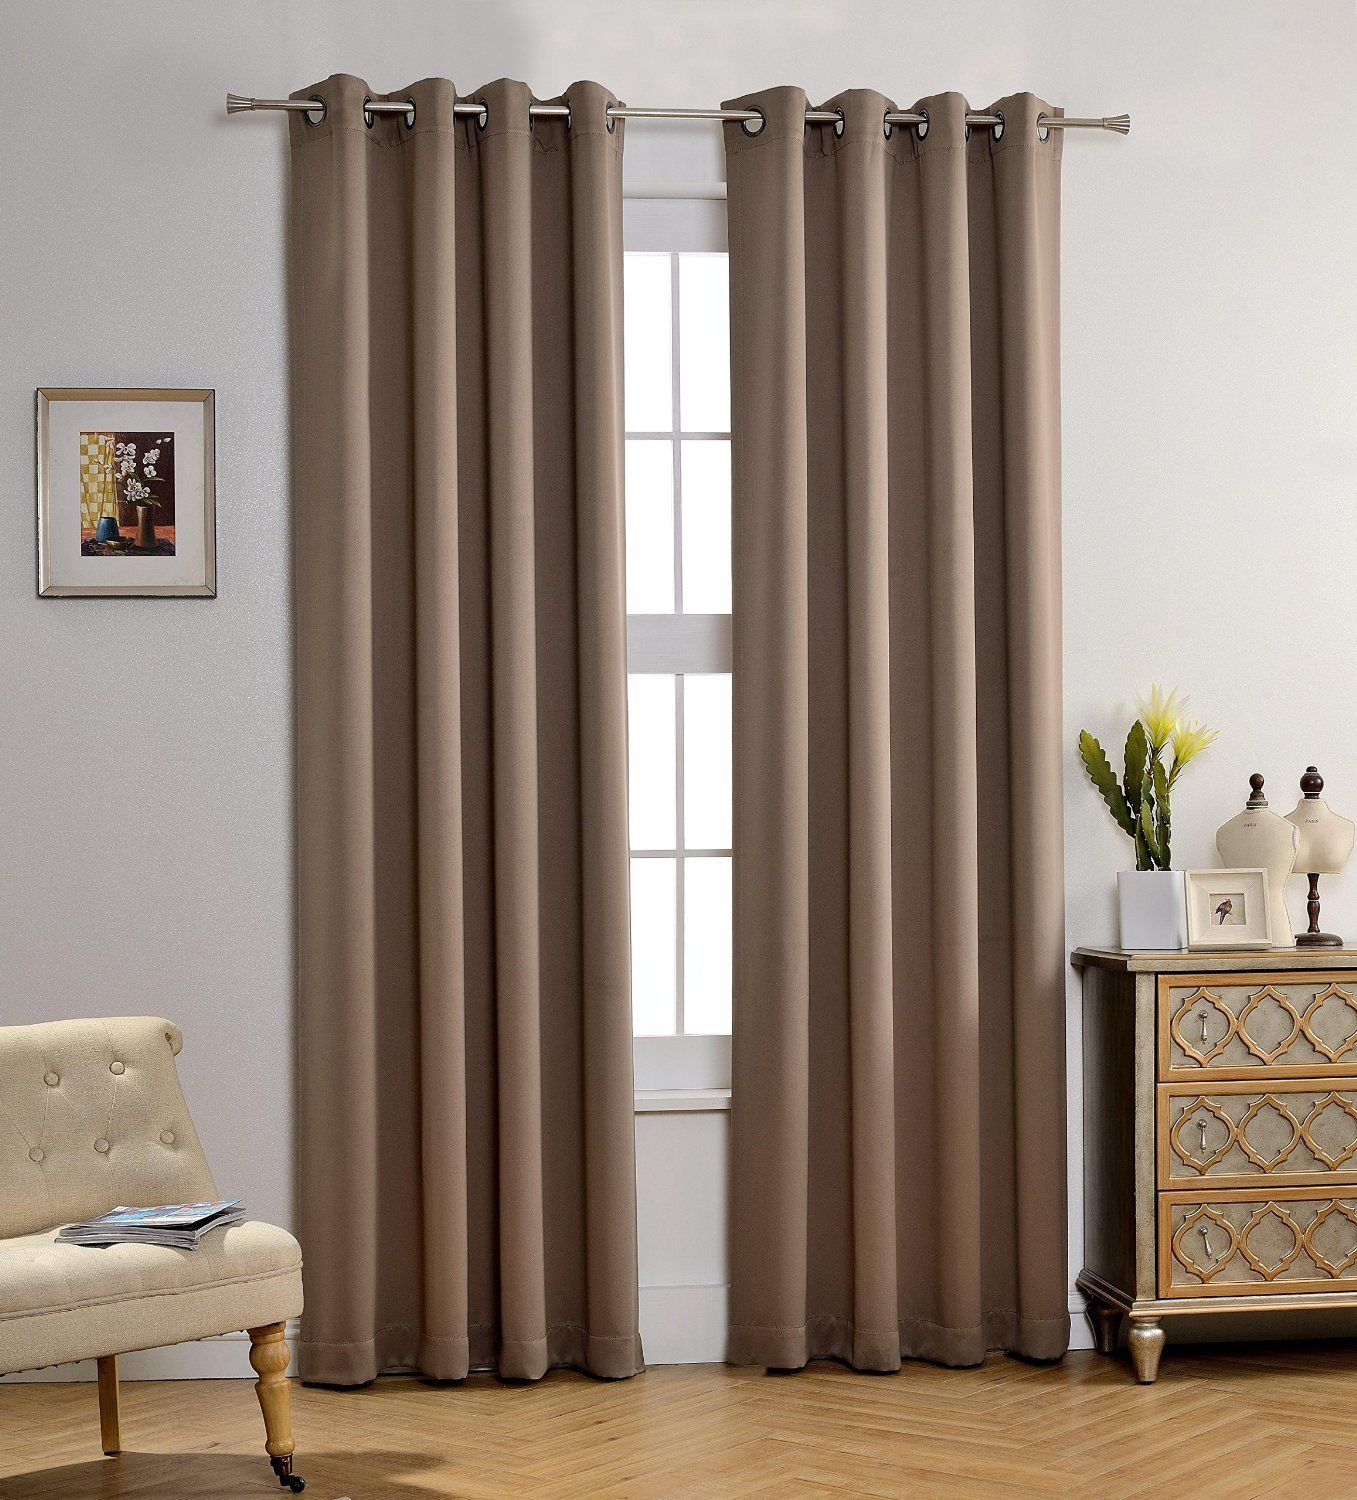 "Amy Solid Thermal Blackout Sun-Reflecting Shiny-Back Grommet Window Curtain Panel 84"" Long - Taupe"